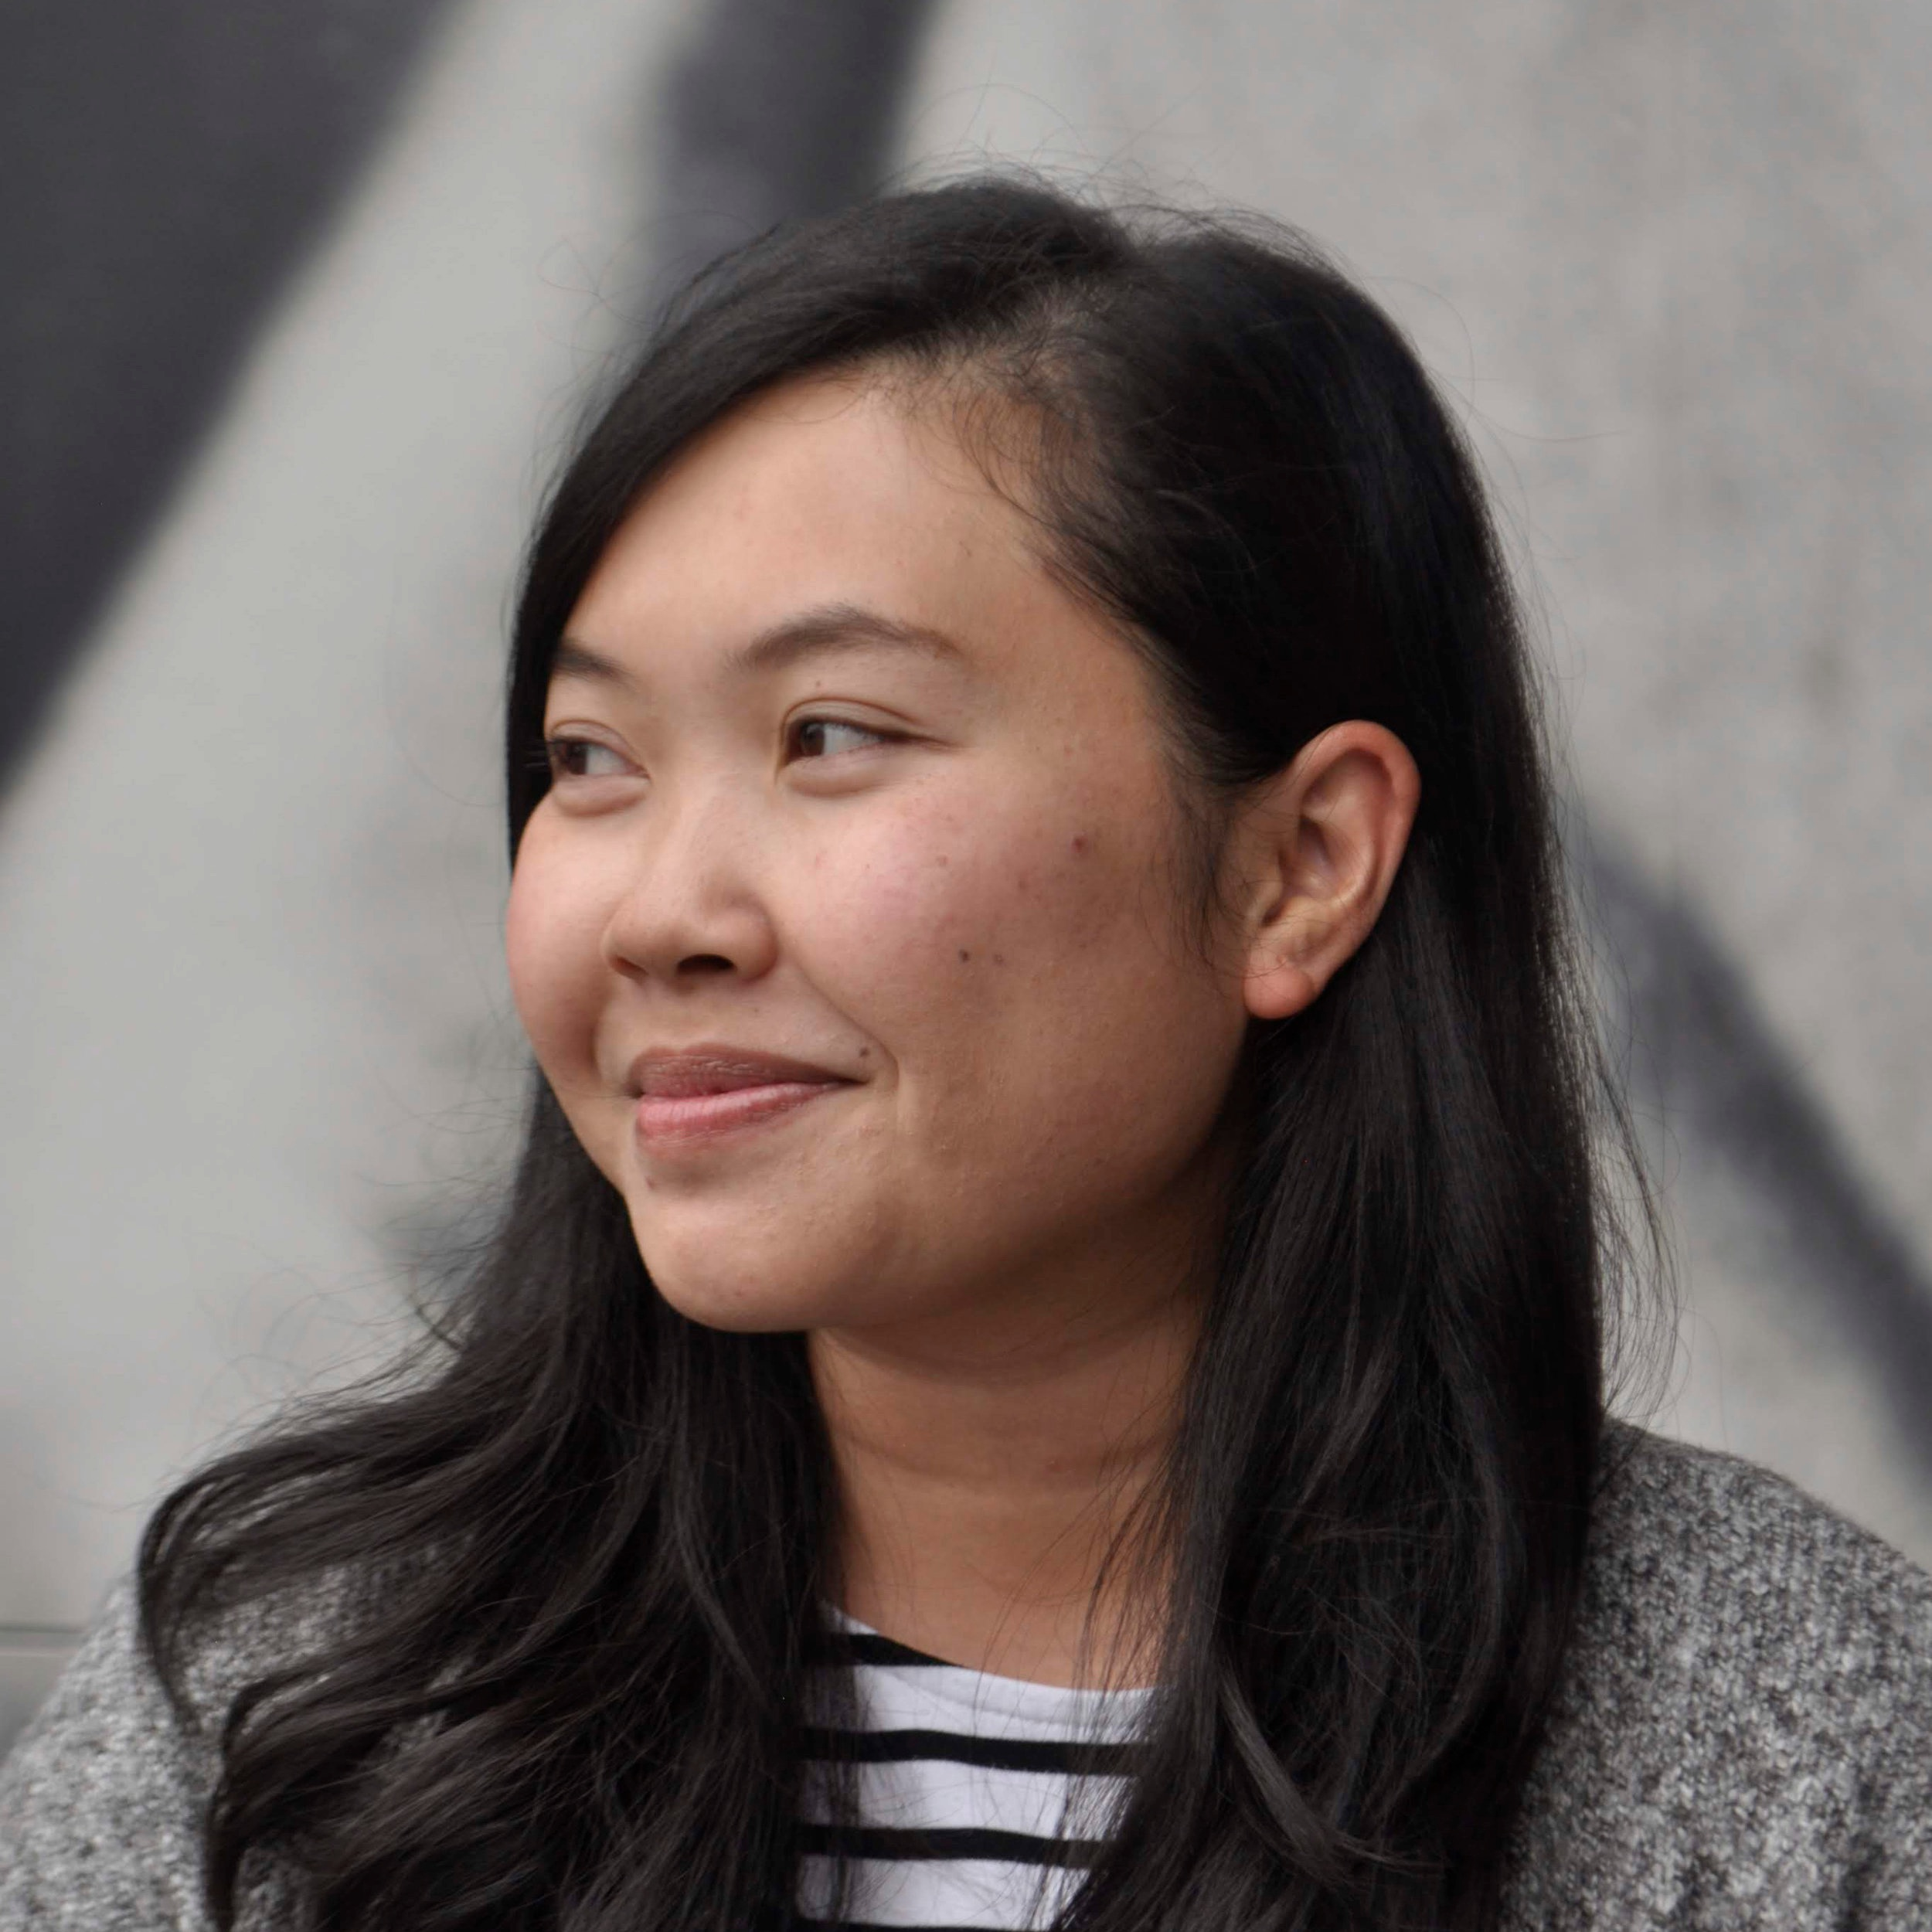 Chanida Phaengdara Potter - SUBJECT: Cultural organizing and the case study of The SEAD Project and Little Laos on the Prairie blog within the Southeast Asian diaspora context, where we've used storytelling and cultural assets for movement building.